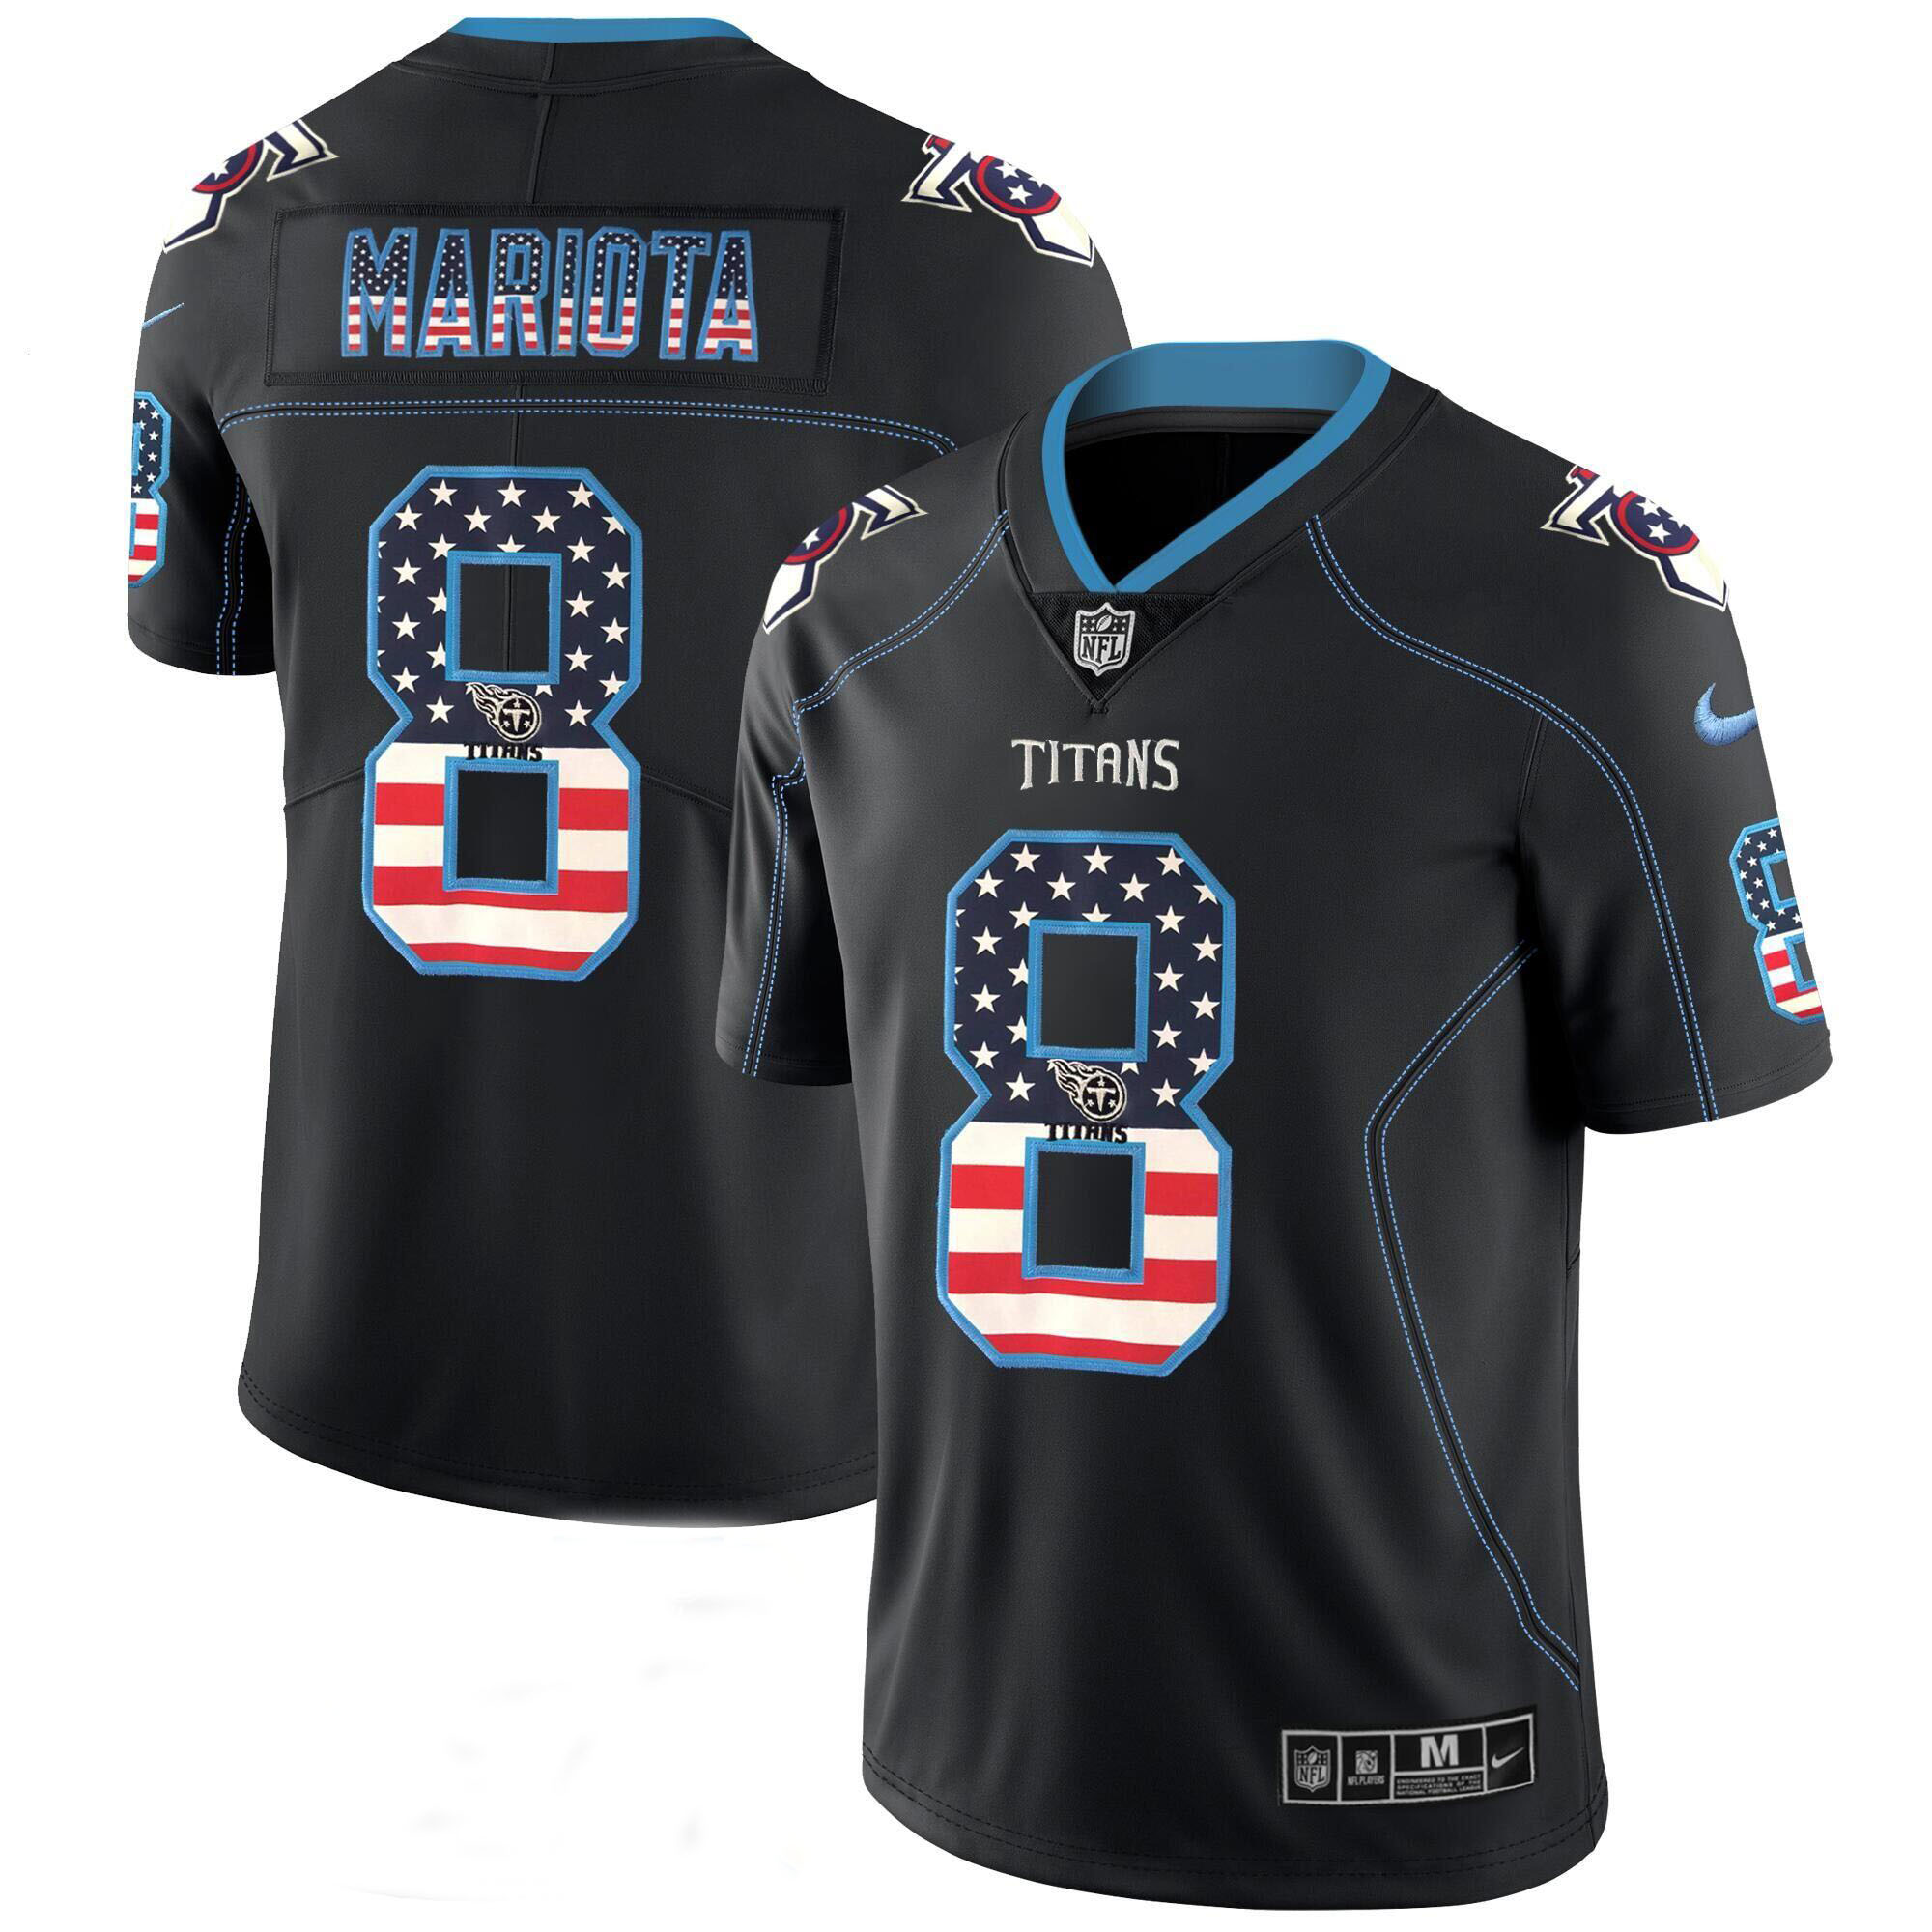 Men's Titans #8 Marcus Mariota Black 2018 USA Flag Color Rush Limited Fashion NFL Stitched Jersey